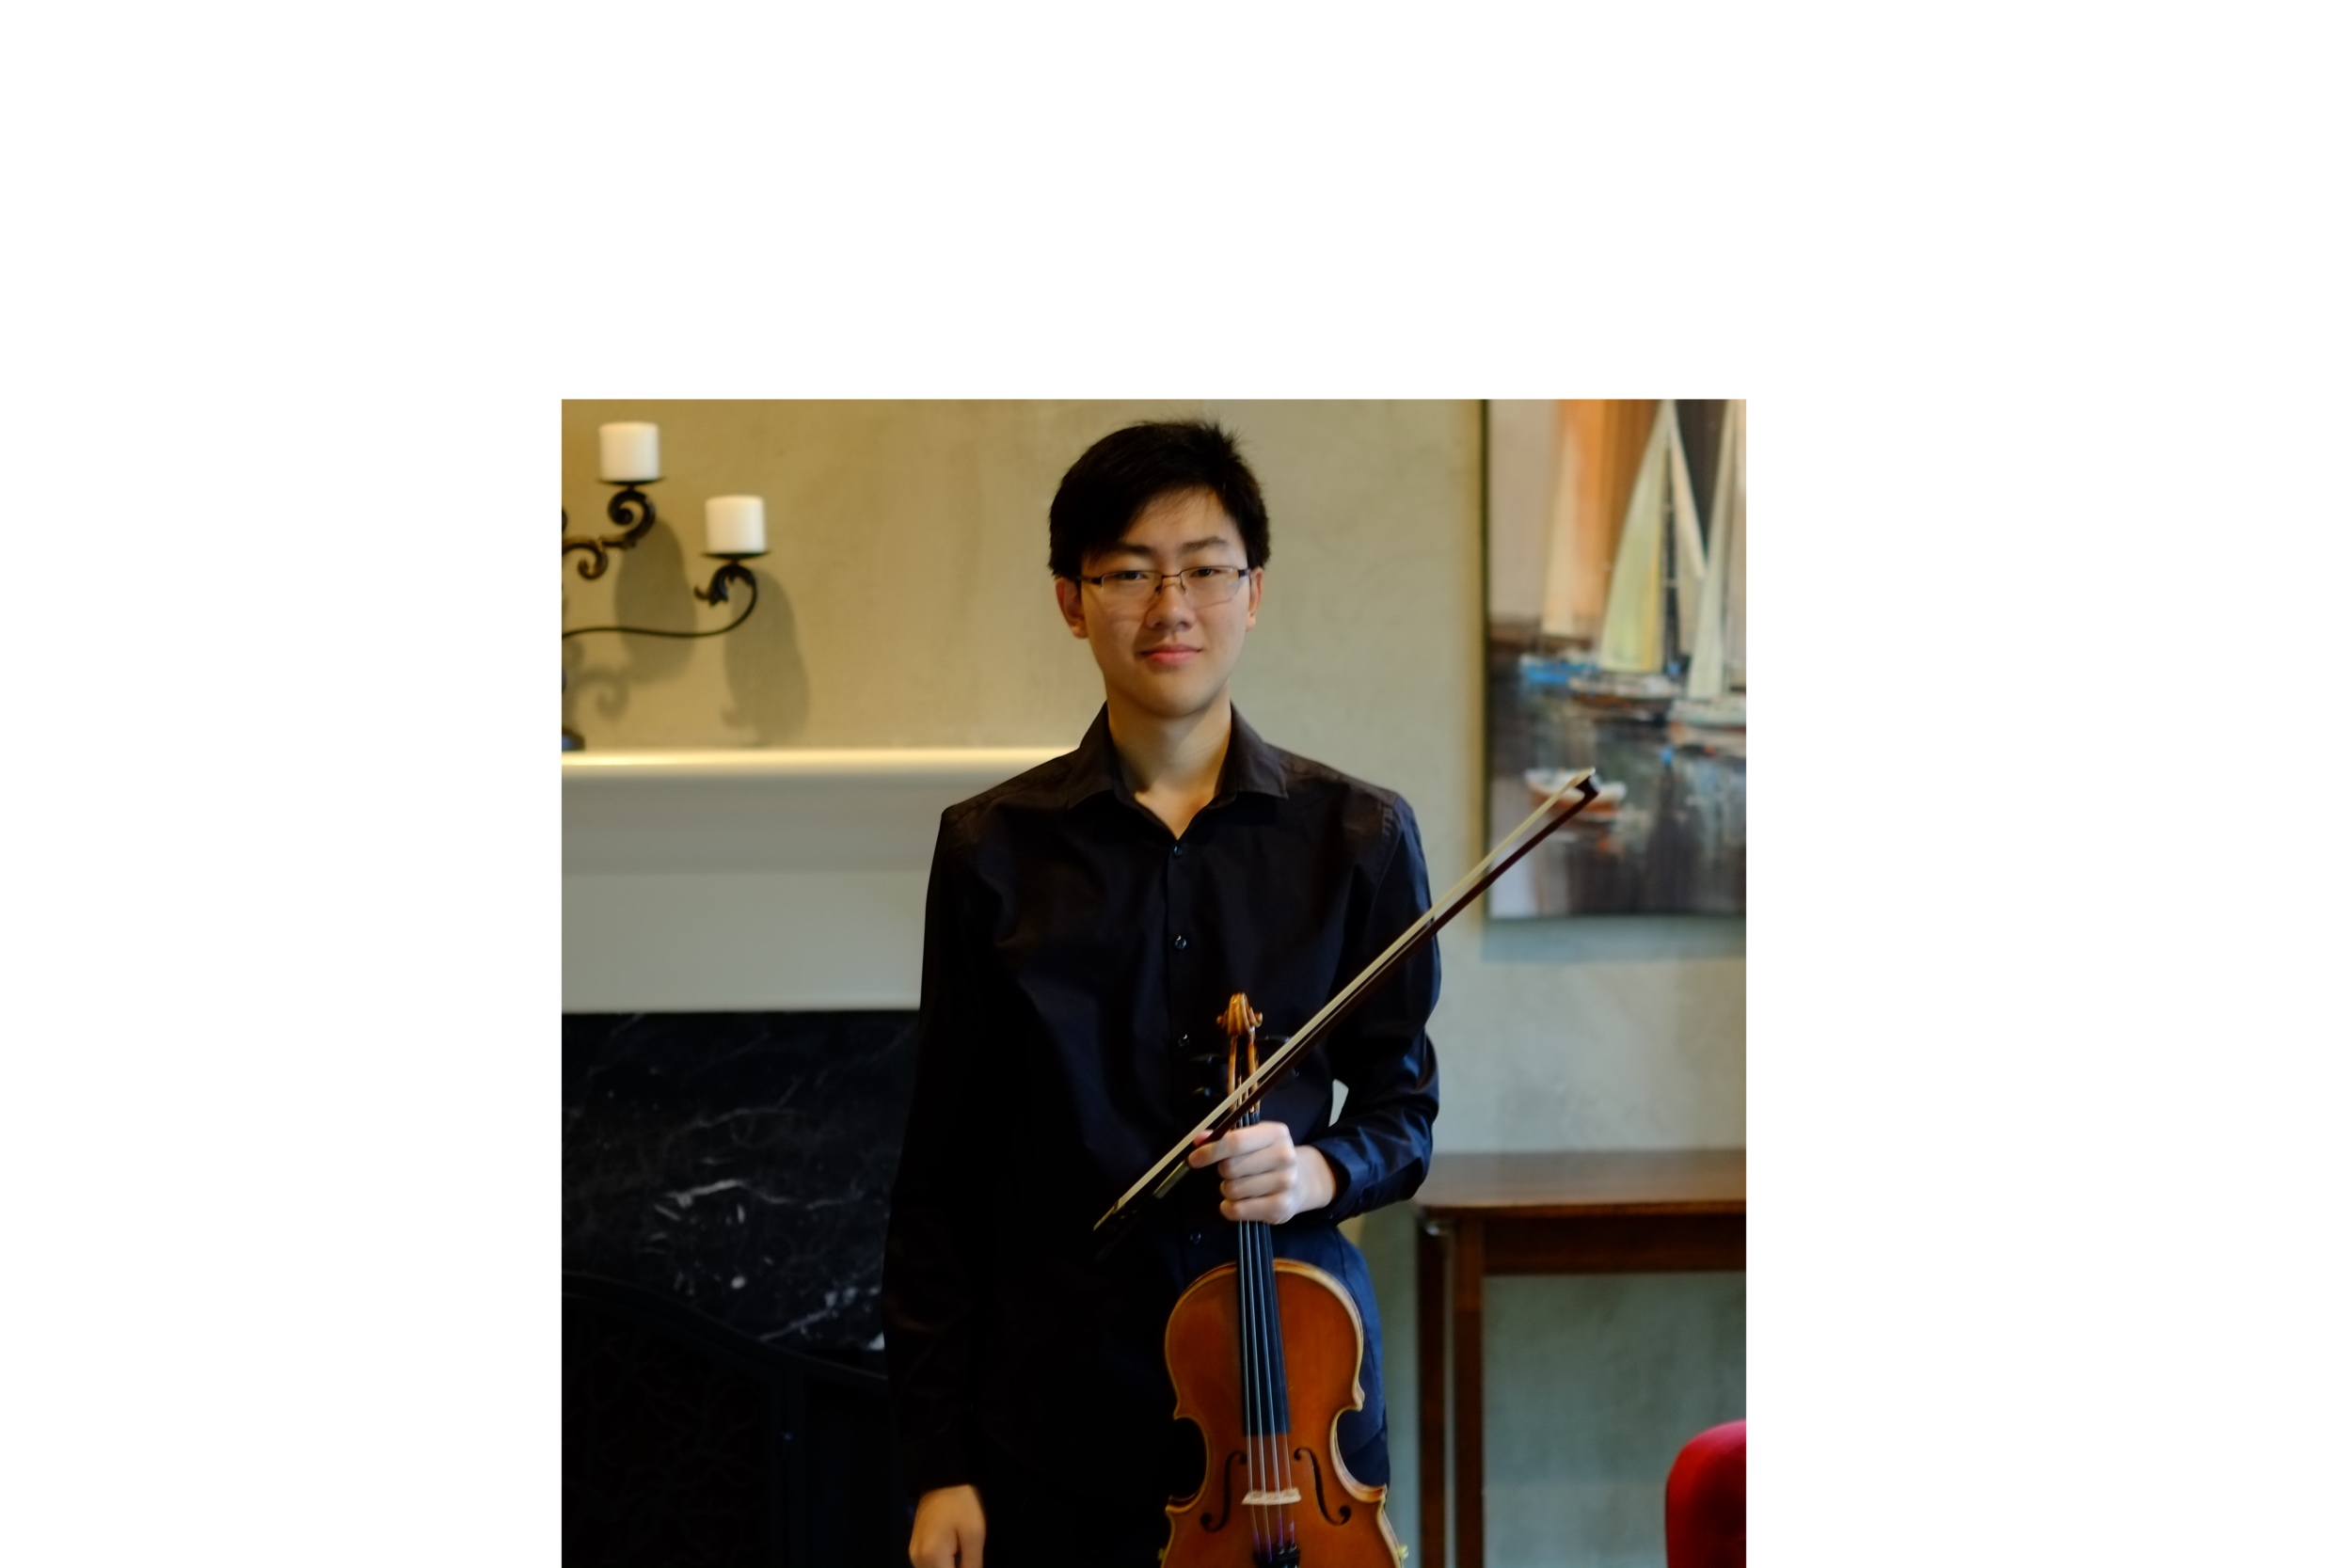 Brian Zhan , 17, is a senior at the Charlotte Country Day School. He has played violin for 13 years and is currently studying with Dr. Ernest Pereira and Victoria Pan. Previously, Brian was the assistant concertmaster of the Charlotte Symphony Youth Orchestra and is currently in the Youth Orchestra of Charlotte. In 2017 and 2018, he was a runner up in the Symphony Guild of Charlotte's Young Artists Competition in both the junior and senior division. In 2019, he was selected as a finalist in the Hilton Head Concerto Competition. In past years, he has served as associate concertmaster and concertmaster in the Western Regionals Orchestra, concertmaster of the North Carolina All-State Orchestra, and most recently, he was selected to be a participant in the NAFME All-Nationals Symphony Orchestra in Florida.  Over the past summers, Brian has attended music festivals such as the Philadelphia International Music Festival, the Eastern Music Festival, the Meadowmount School of Music, and the Heifetz International Music Institute. He has studied with renowned faculty such as Ani Kavafian, Elmar Oliveira, Mark Kaplan, Bela Horvath, Kikuei Ikeda, Kimberly Fischer, and Ara Gregorian.